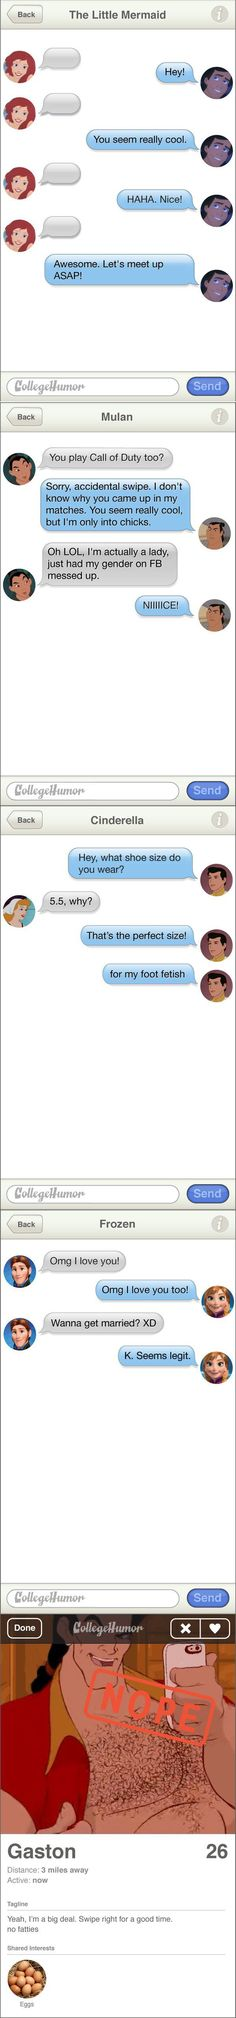 If Disney Princesses Met Their Princes on Tinder